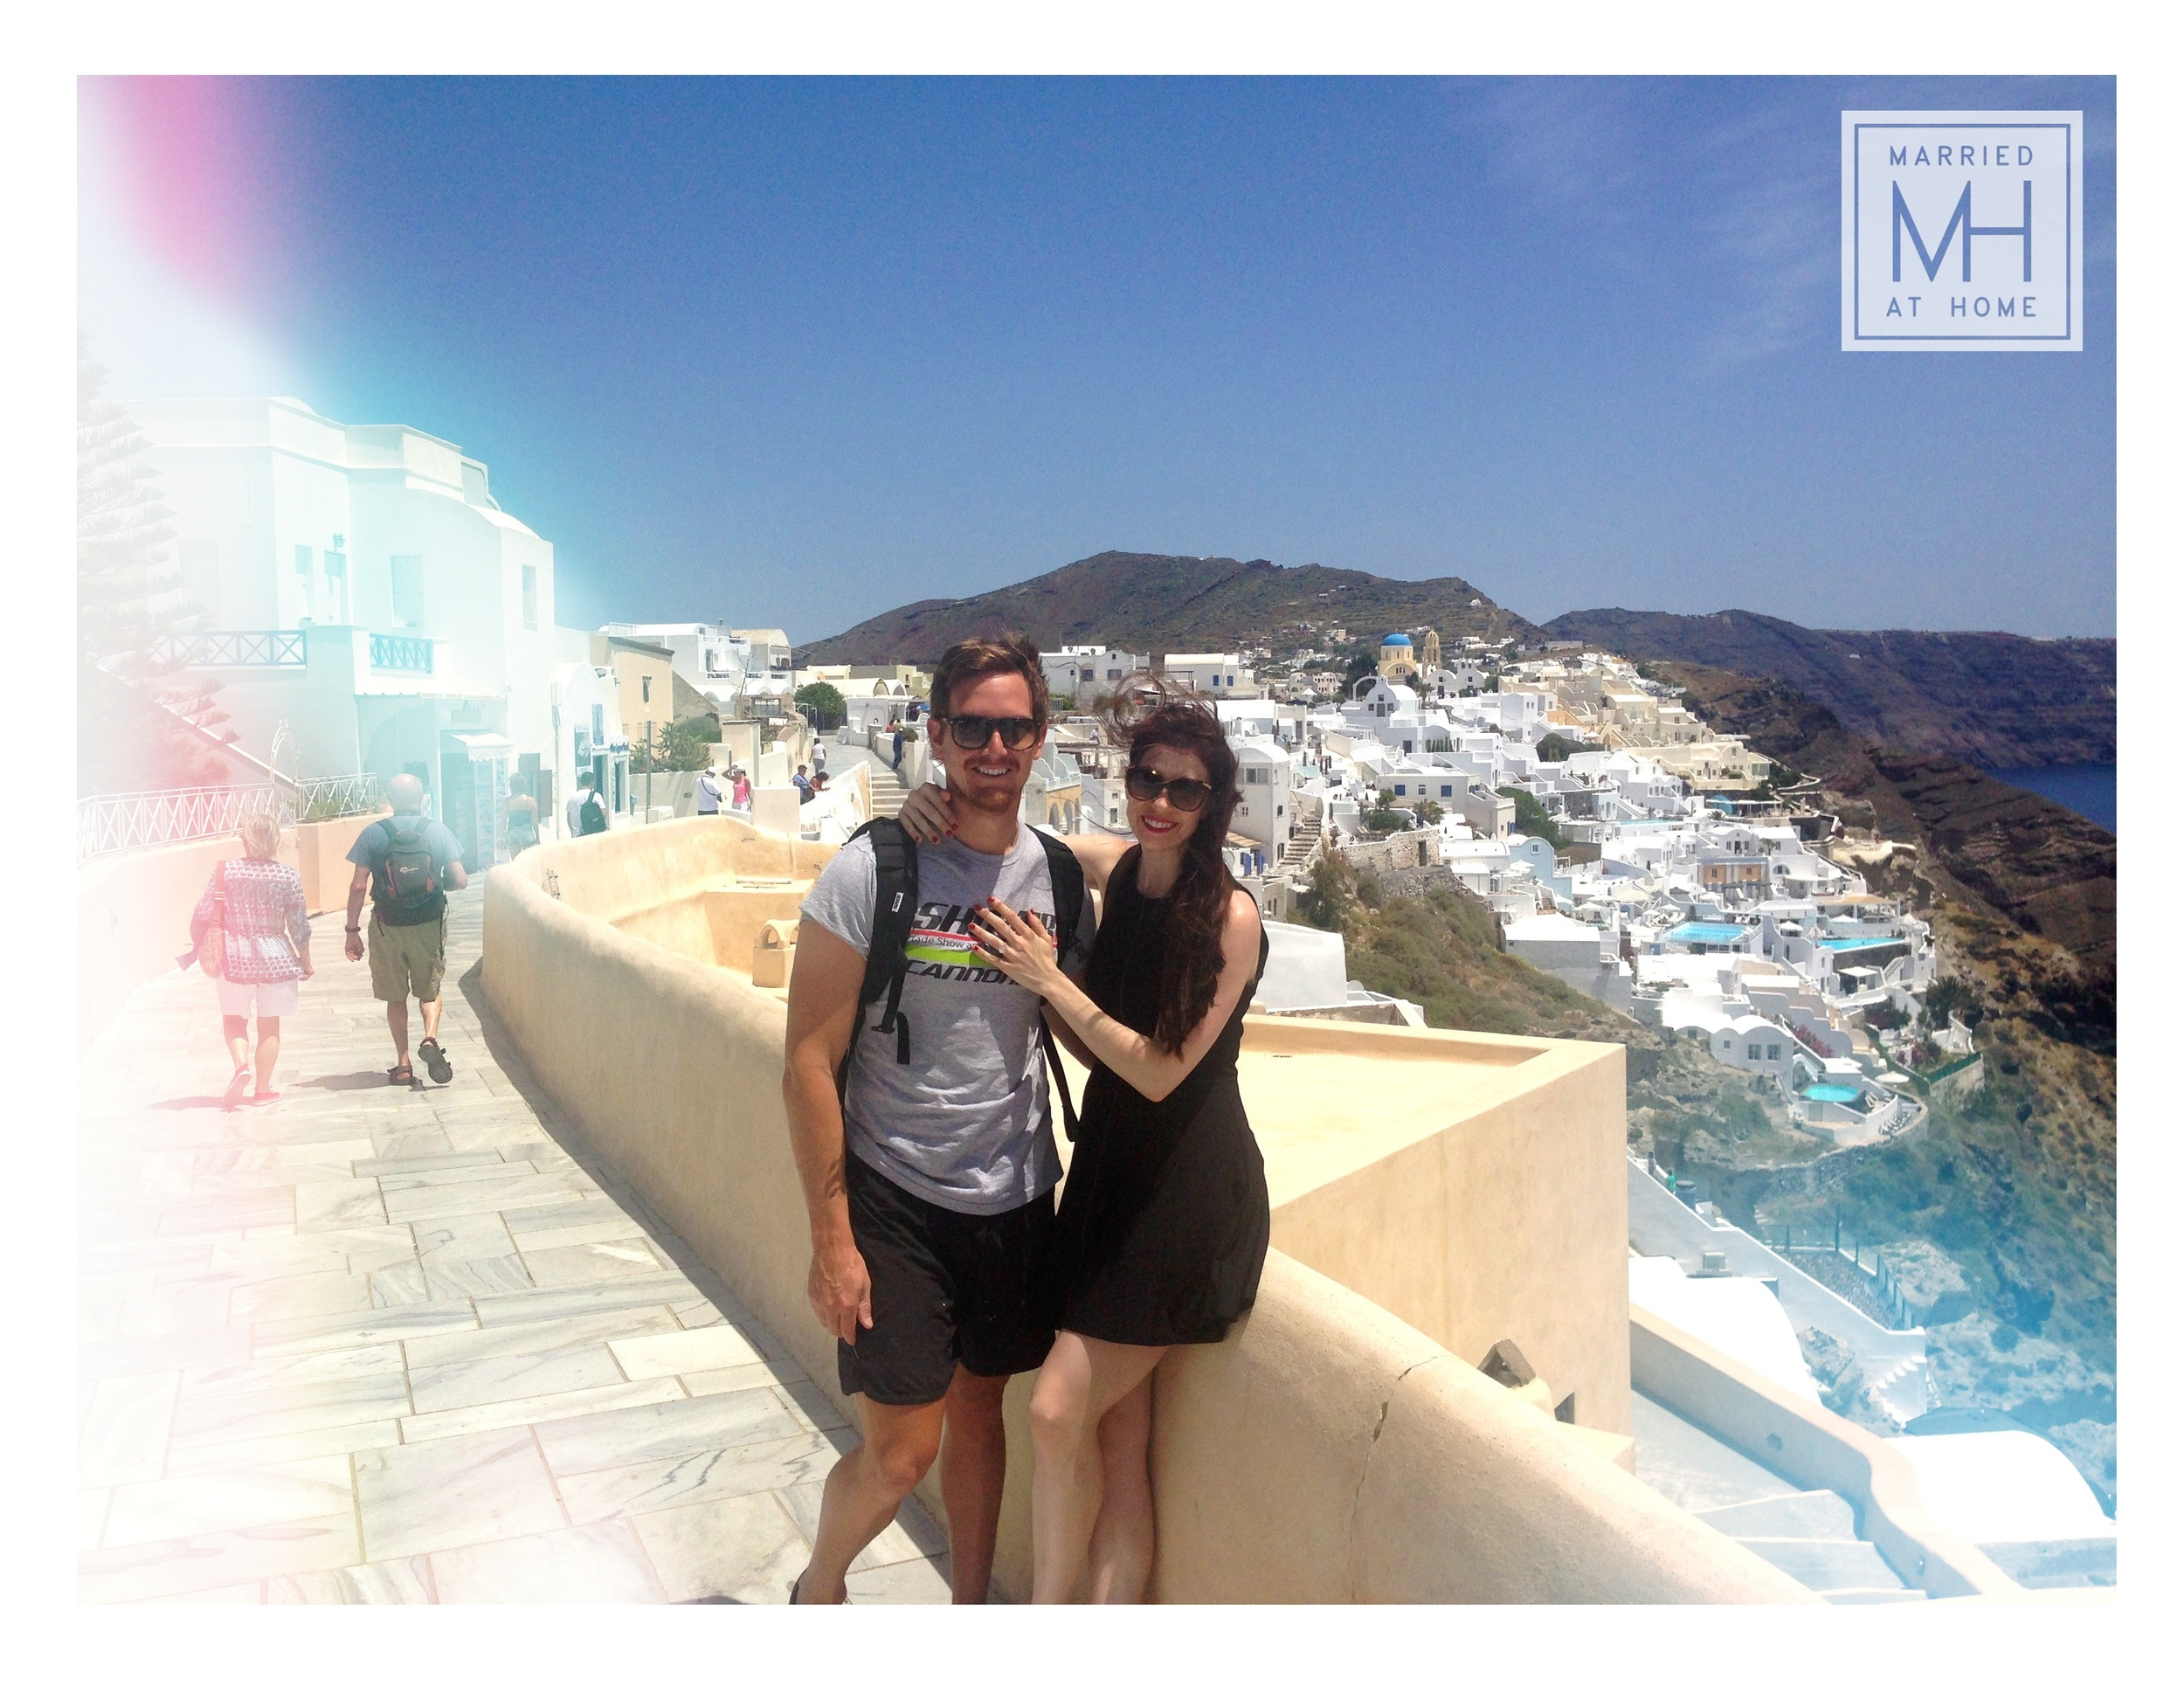 Our Santorini Honeymoon | Married At Home